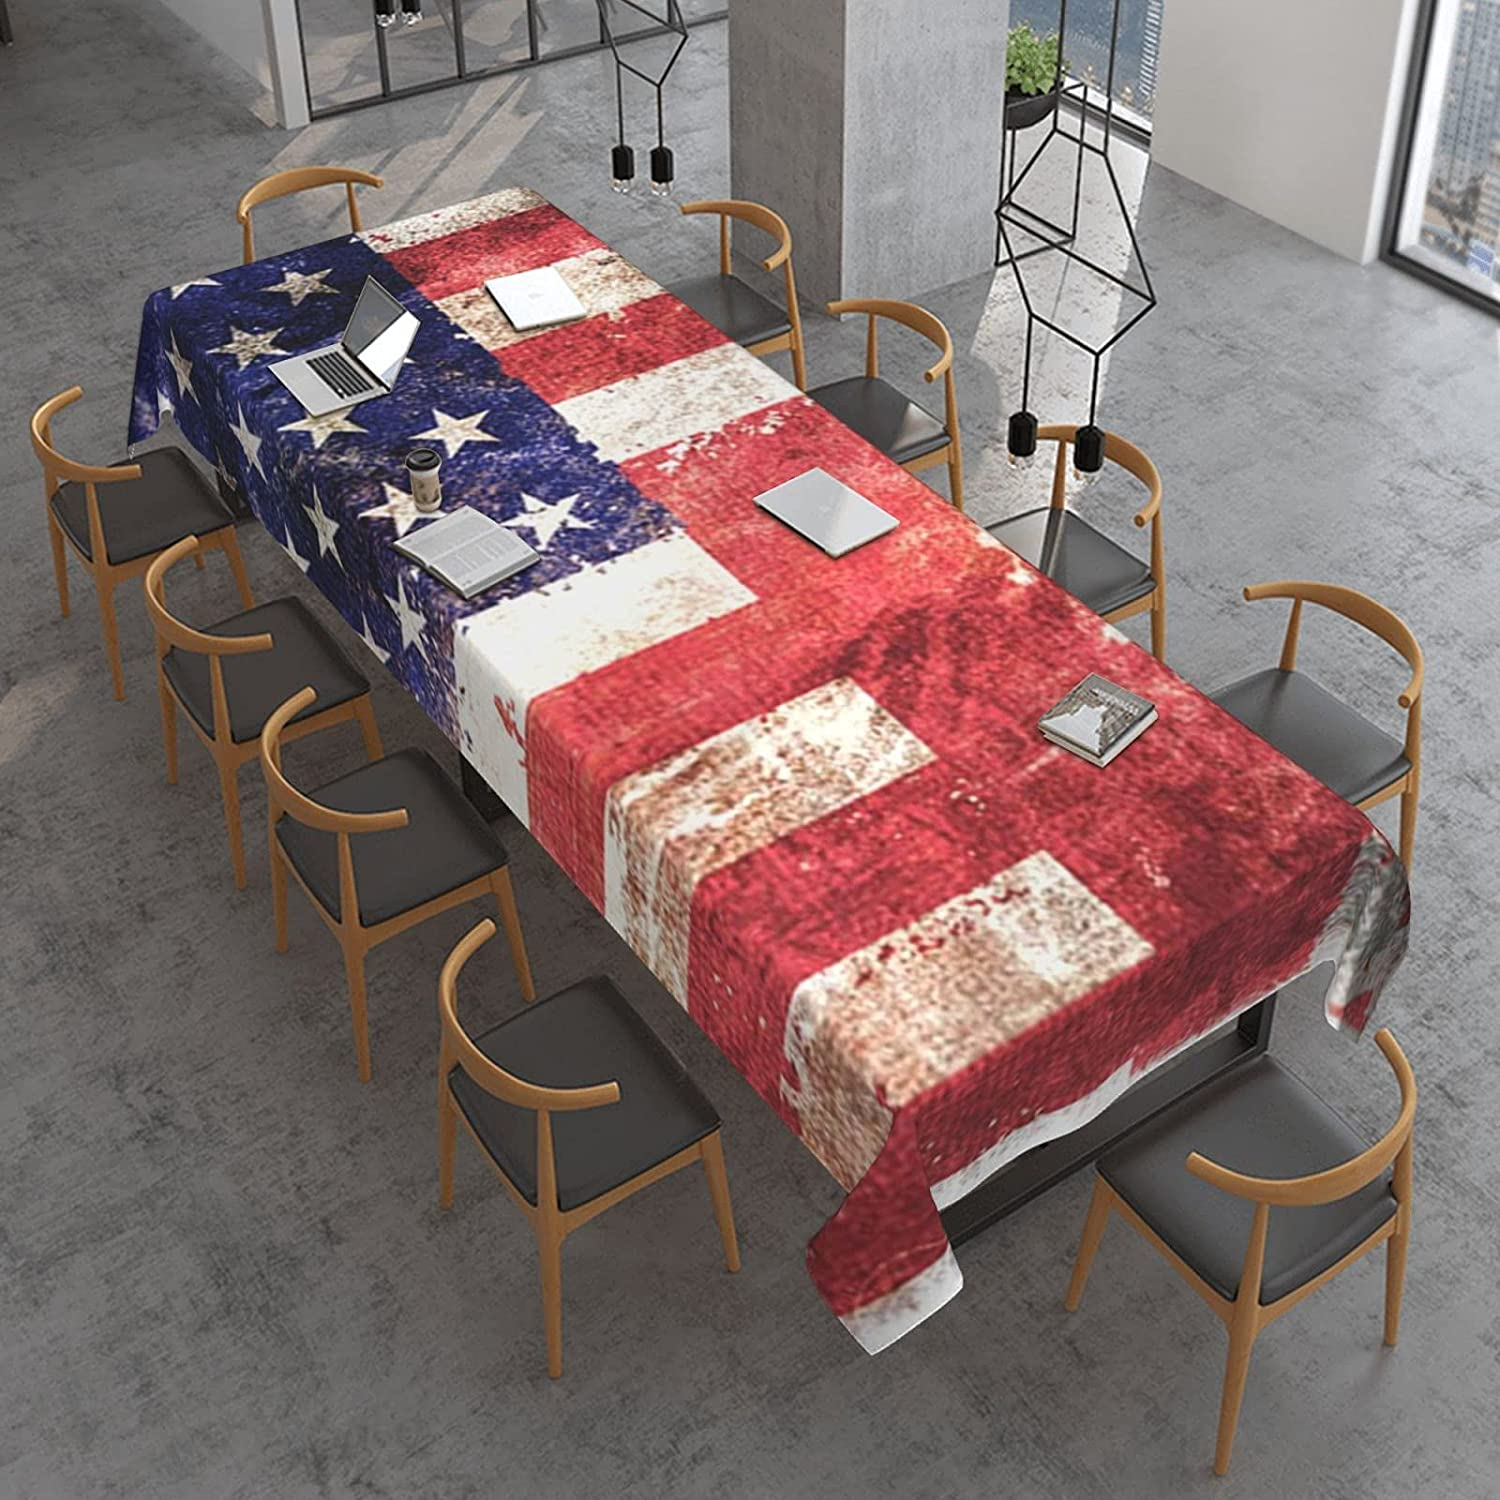 Canada United States Flag Rectangle Spill Oil store Proof Cloth El Paso Mall Table